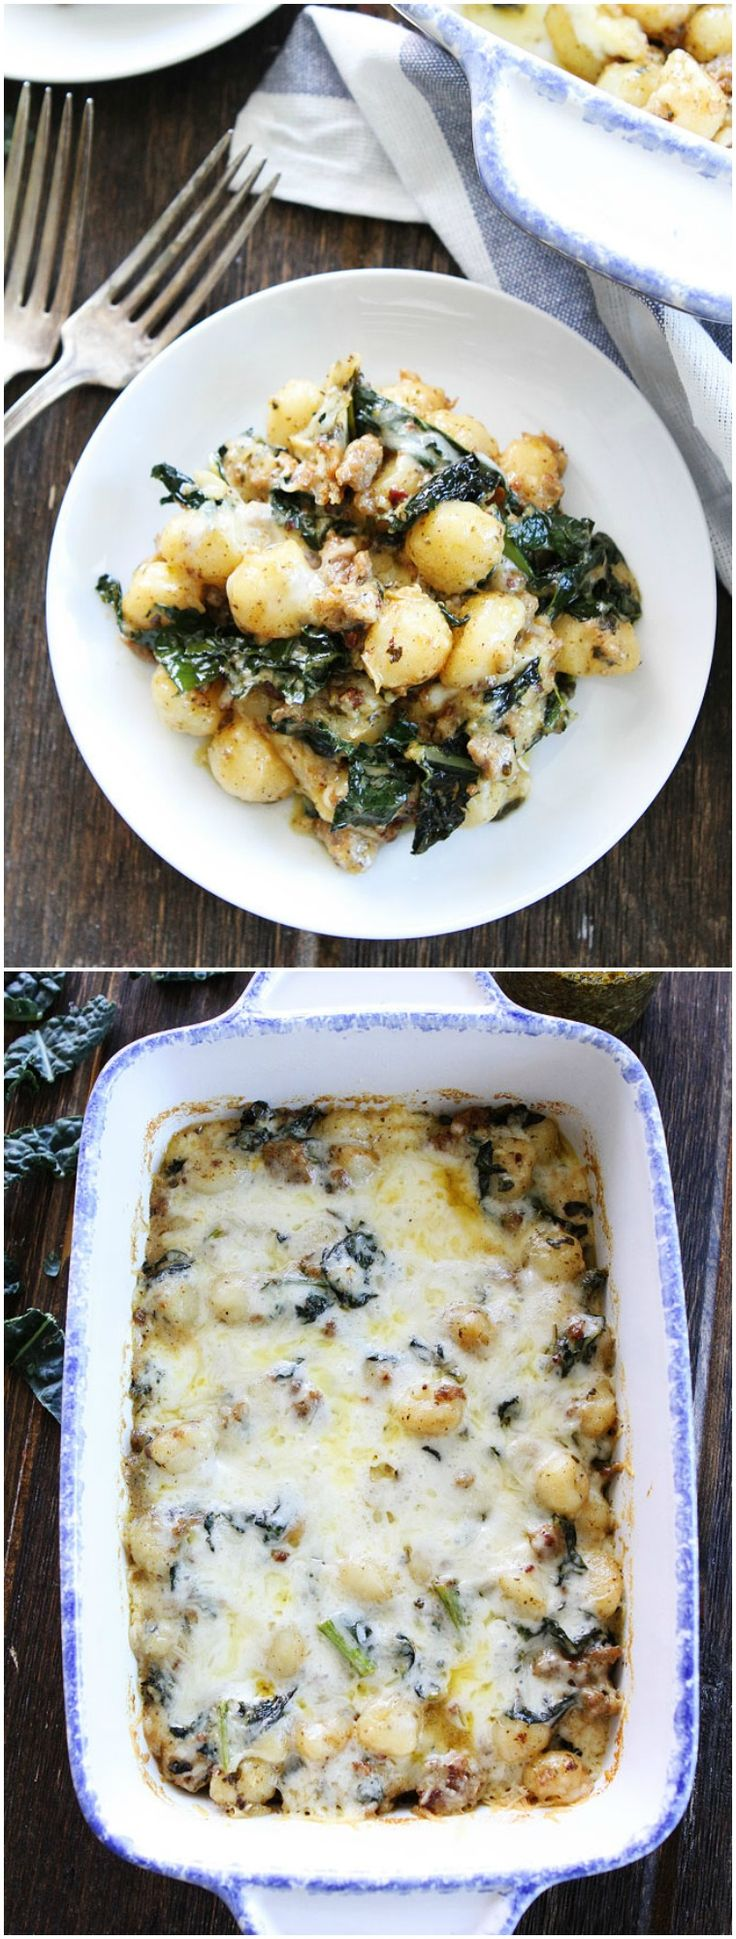 Baked Gnocchi with Sausage, Kale, and Pesto Recipe on twopeasandtheirpod.com. This easy baked gnocchi dish is perfect for weeknight dinners or entertaining!